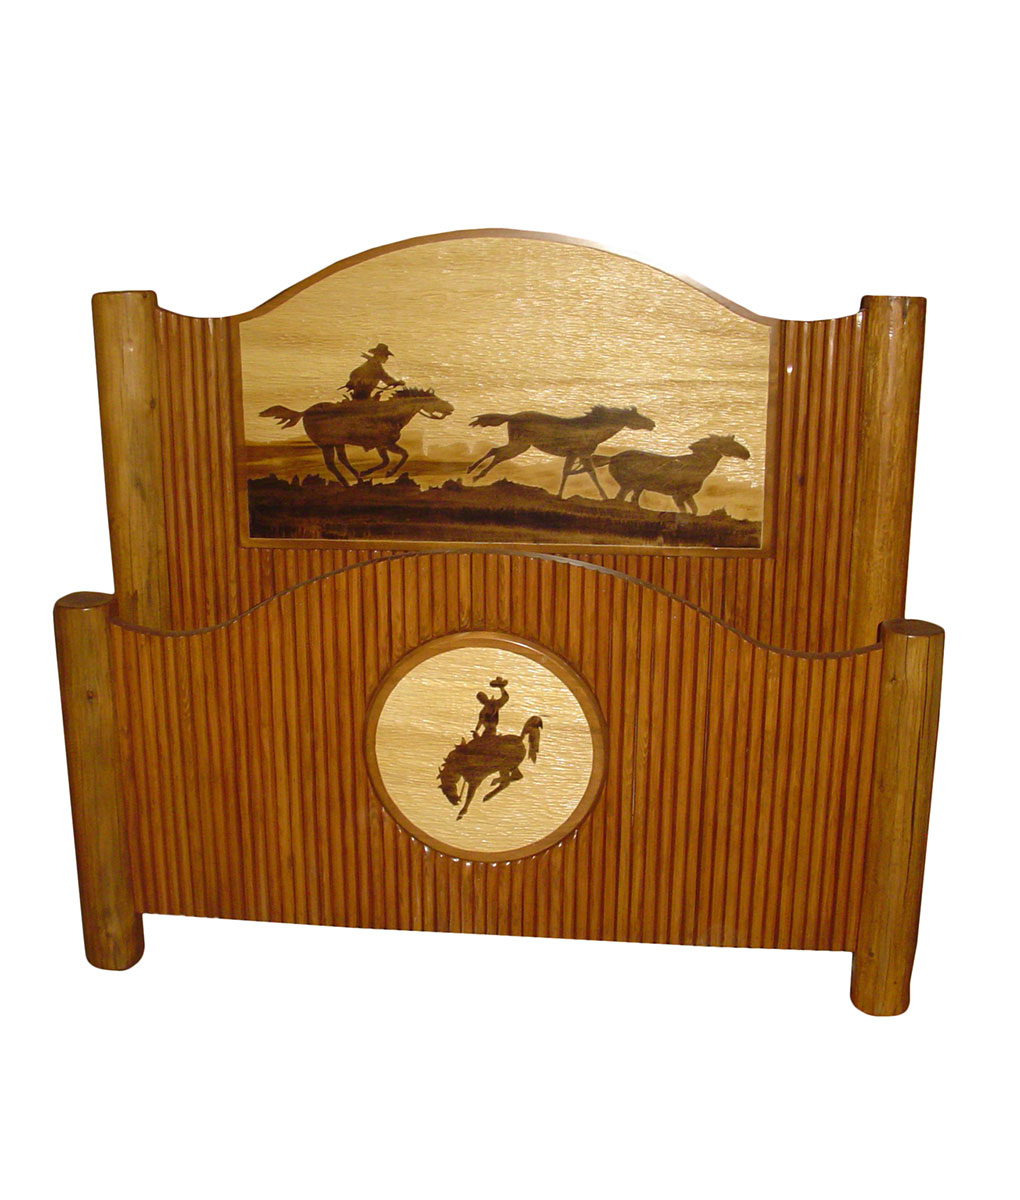 Molesworth Style Rustic Bed with Horse and Cowboy Carving